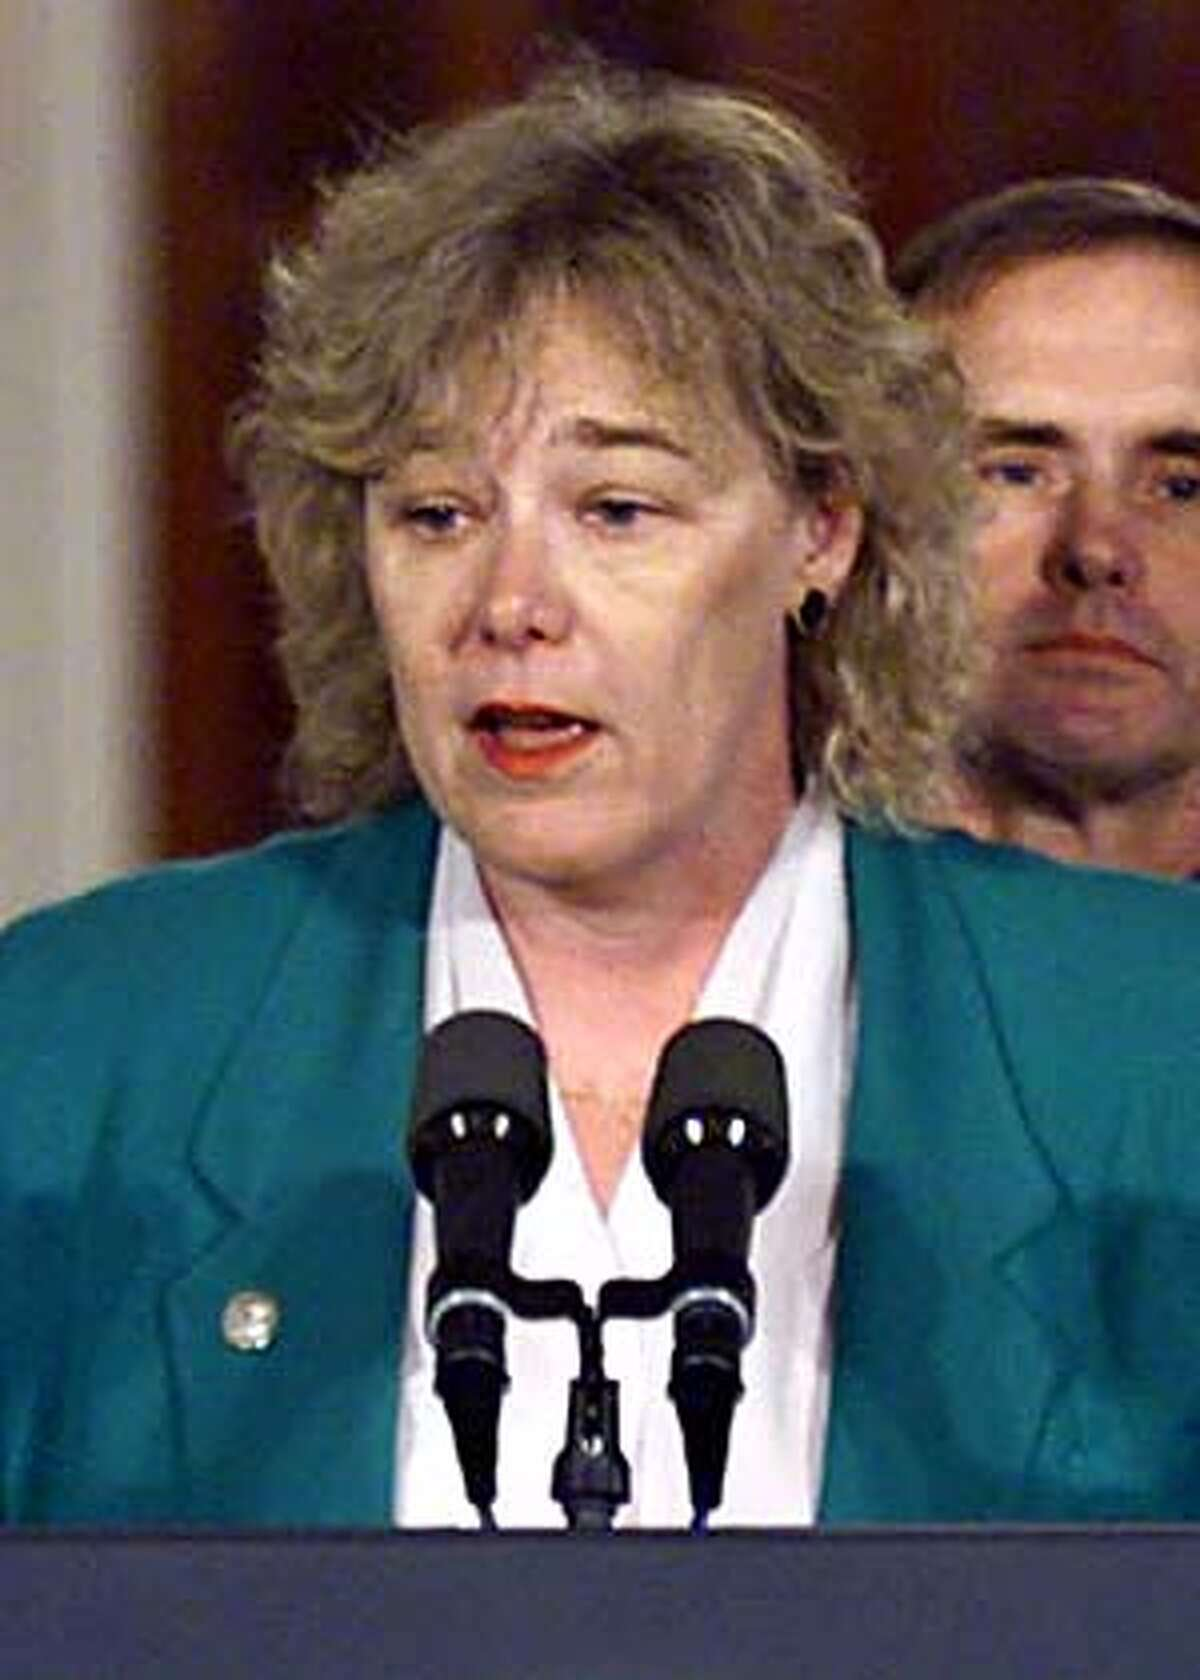 ** FILE ** Rep. Zoe Lofgren, D-CA, speaks as President Clinton and a bipartisan Congressional delegation gathered in the White House East Room to plea for legislators to resume gun safety talks on Capitol Hill, in this March 15, 2000 file photo. Susan Lindauer, 41, who worked for Lofgren in 2002, was arrested was arrested Thursday. march 11, 2004 on charges that she served as a paid agent for the Iraqi intelligence service before and after the U.S. invasion last year. (AP Photo/J. Scott Applewhite)